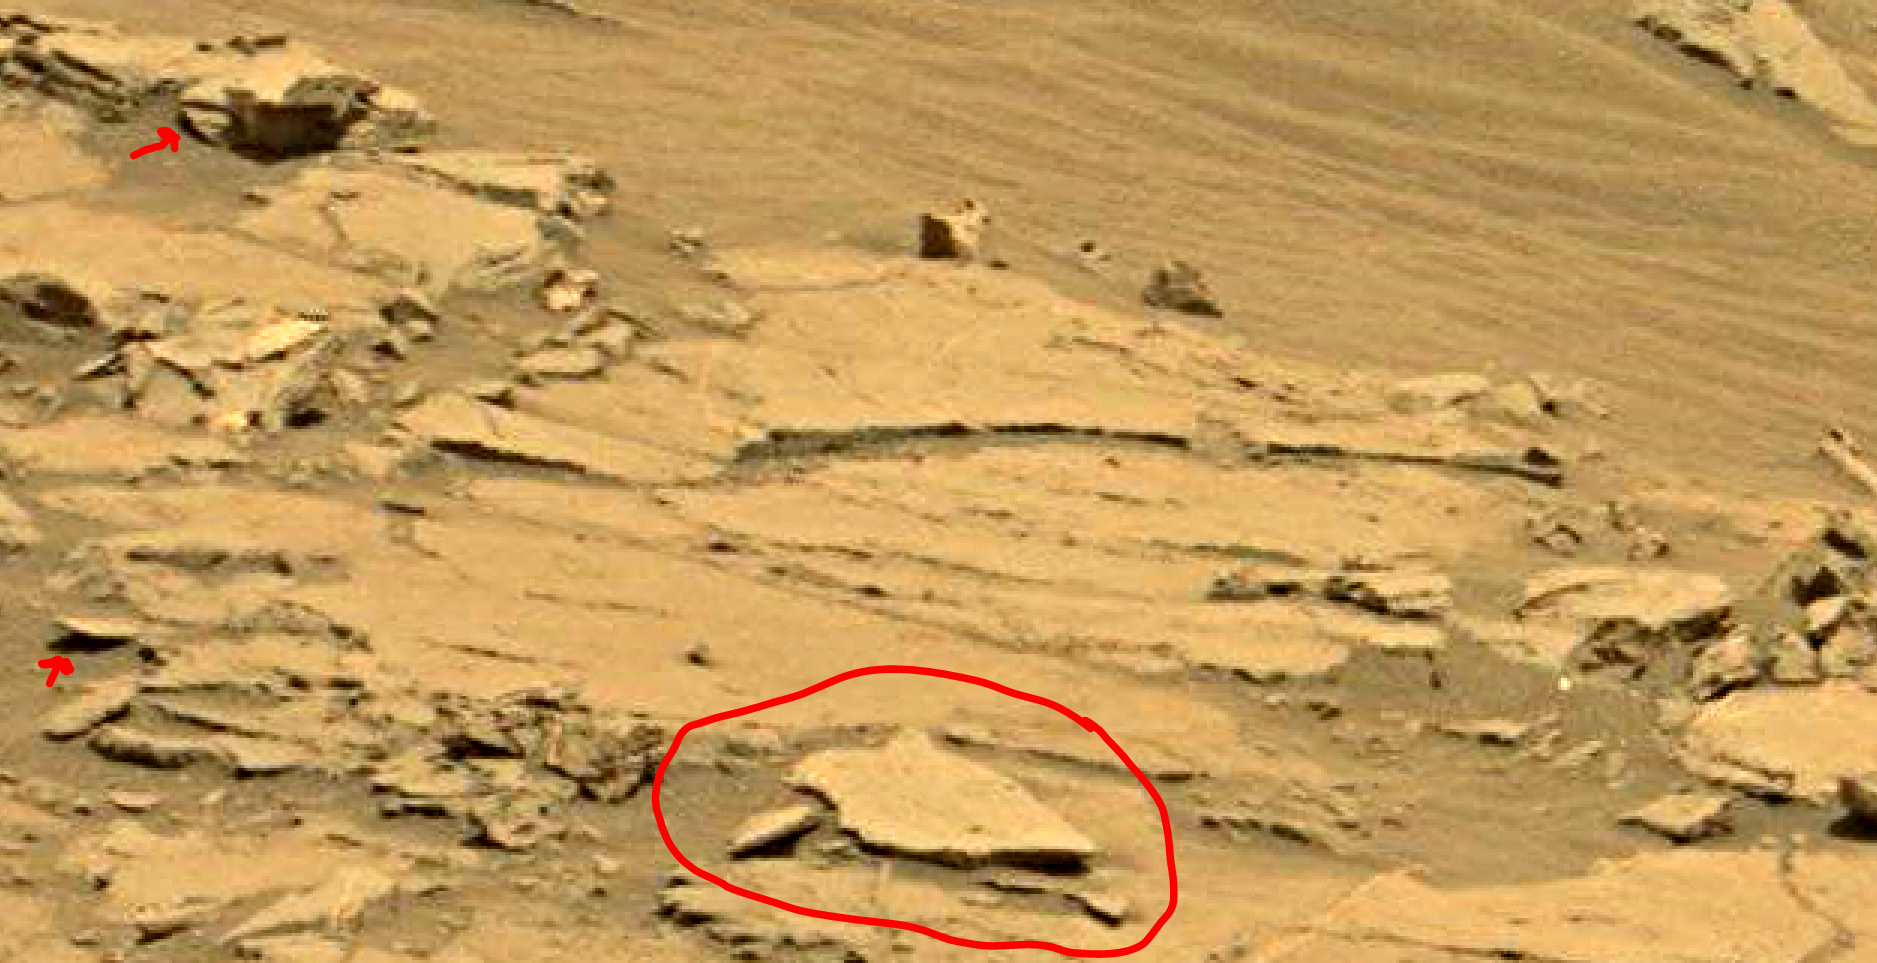 mars sol 1353 anomaly-artifacts 44 was life on mars